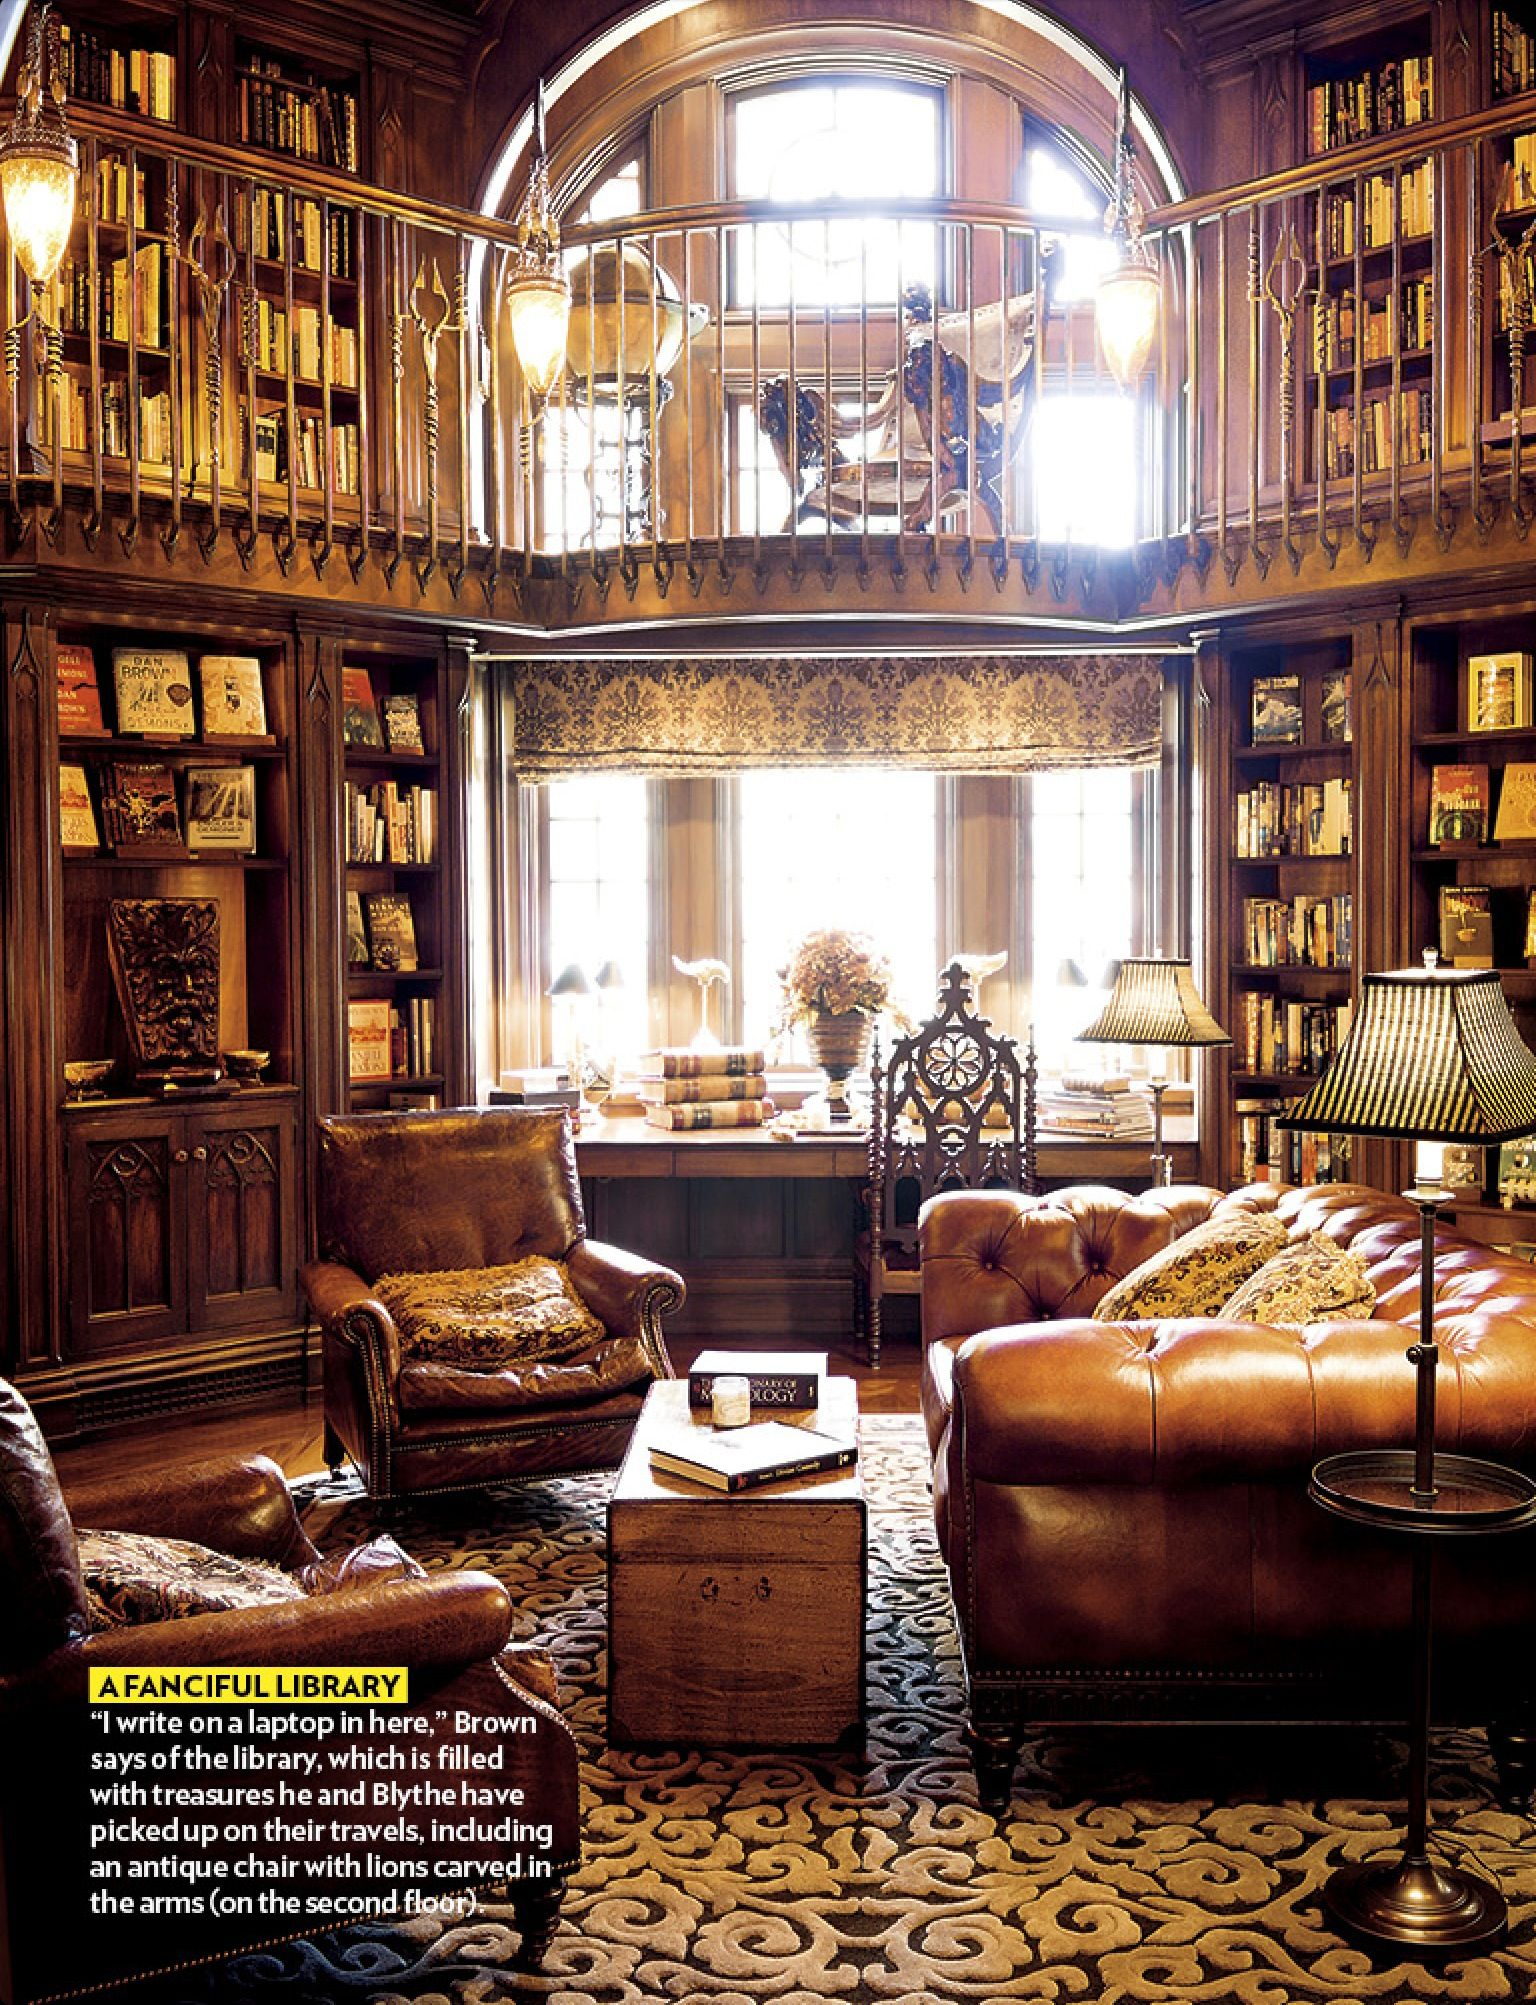 Cozy Home Library Cozy Library Wow You Had Me At